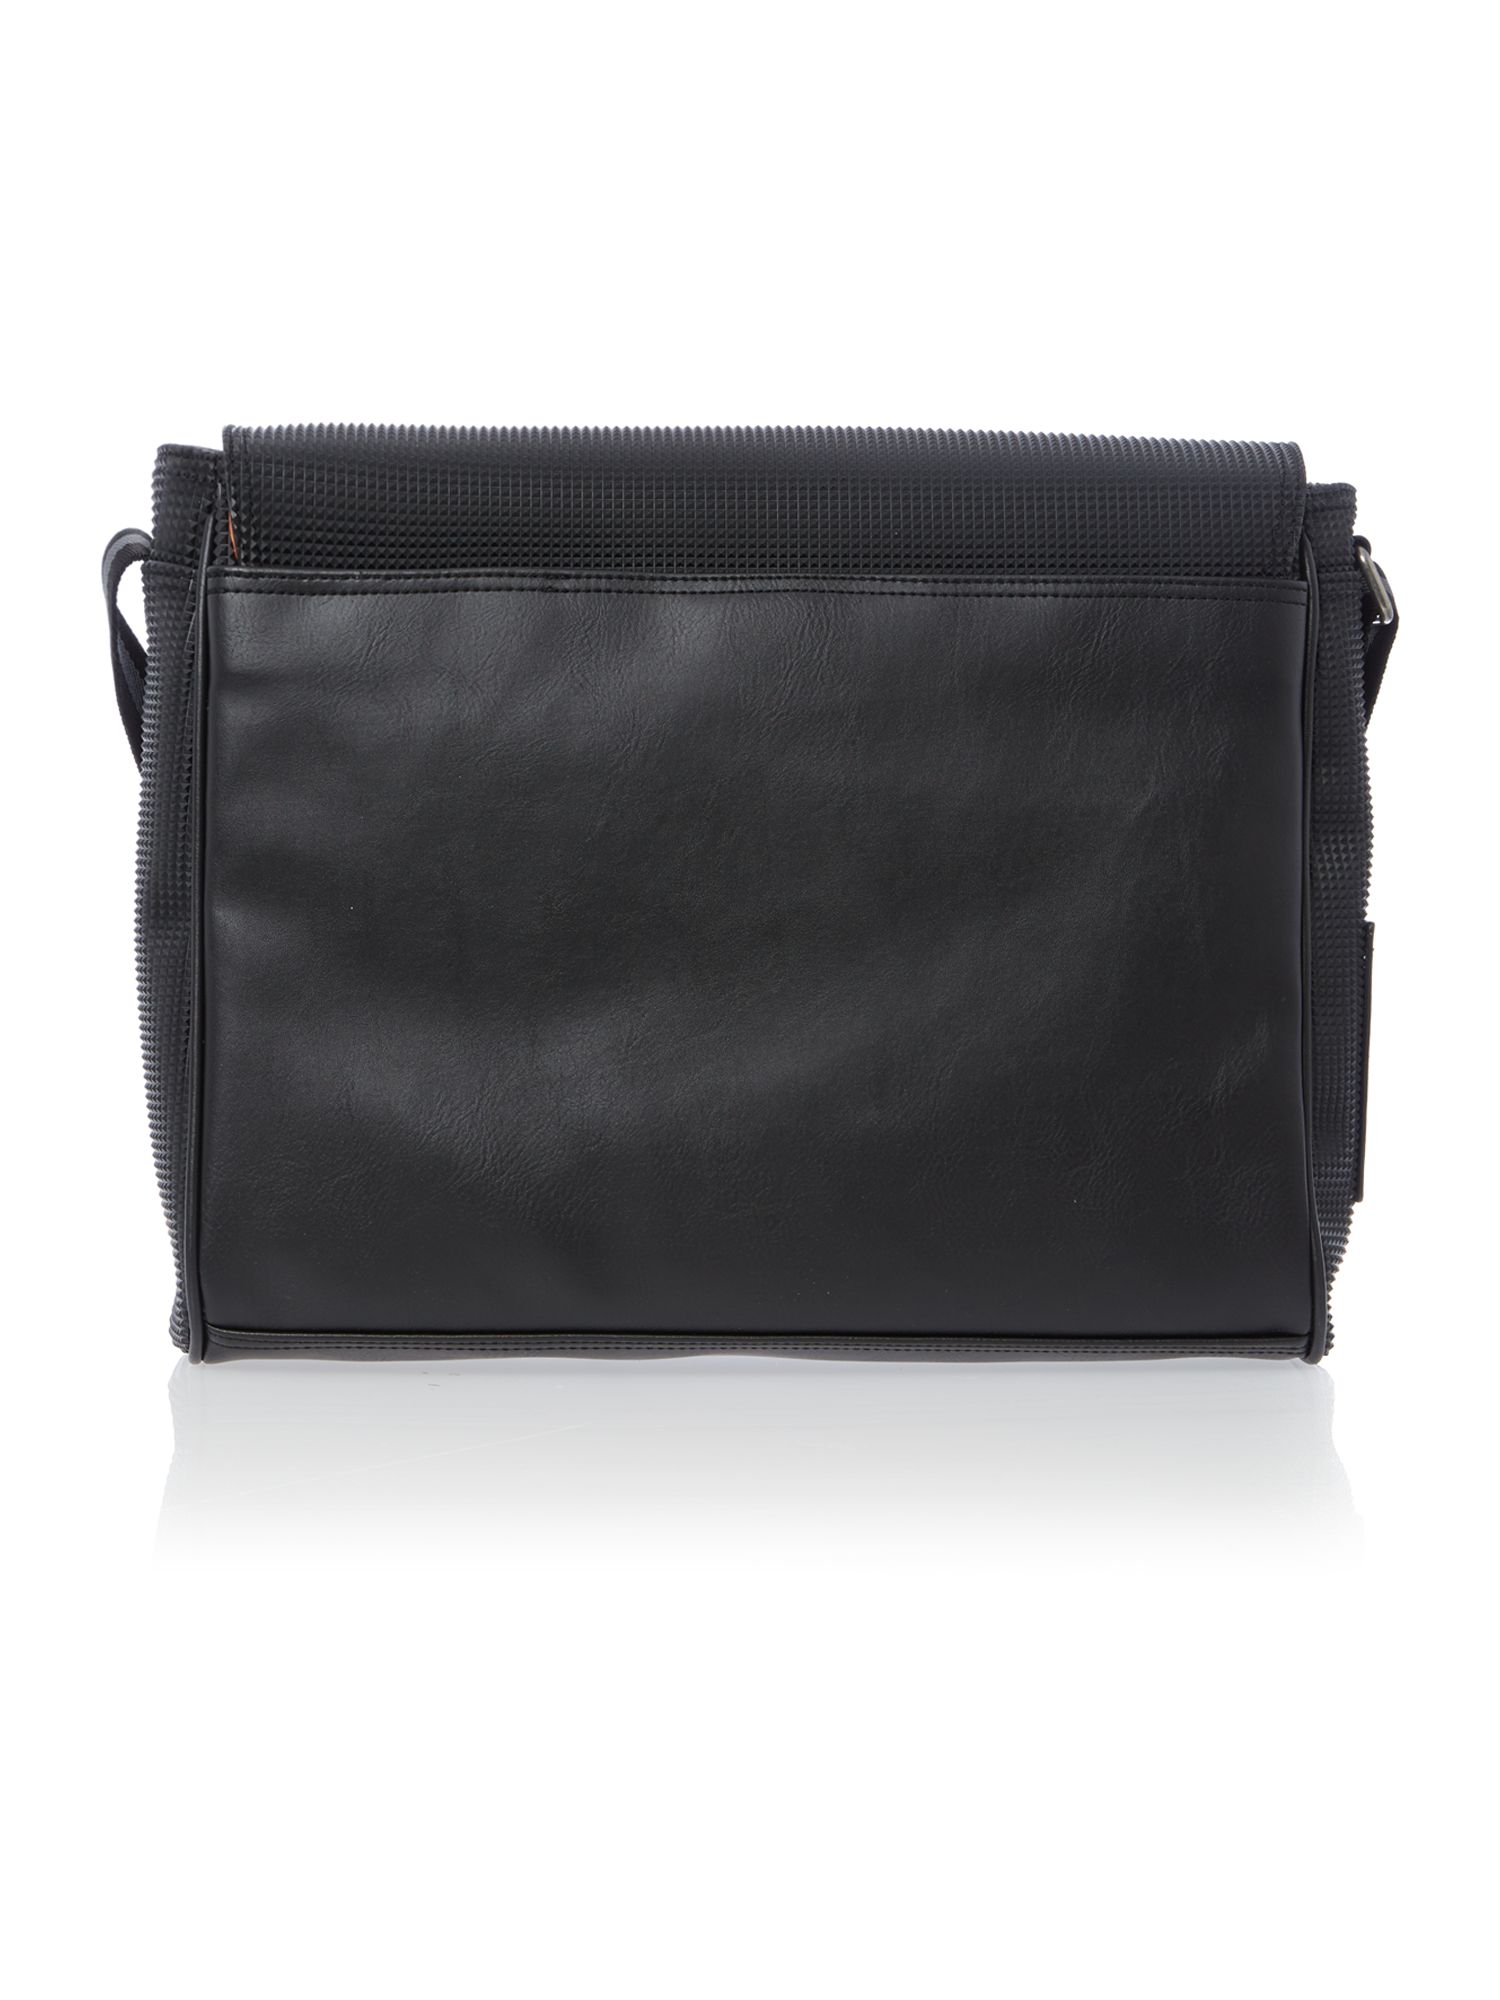 Ralph textured messenger bag